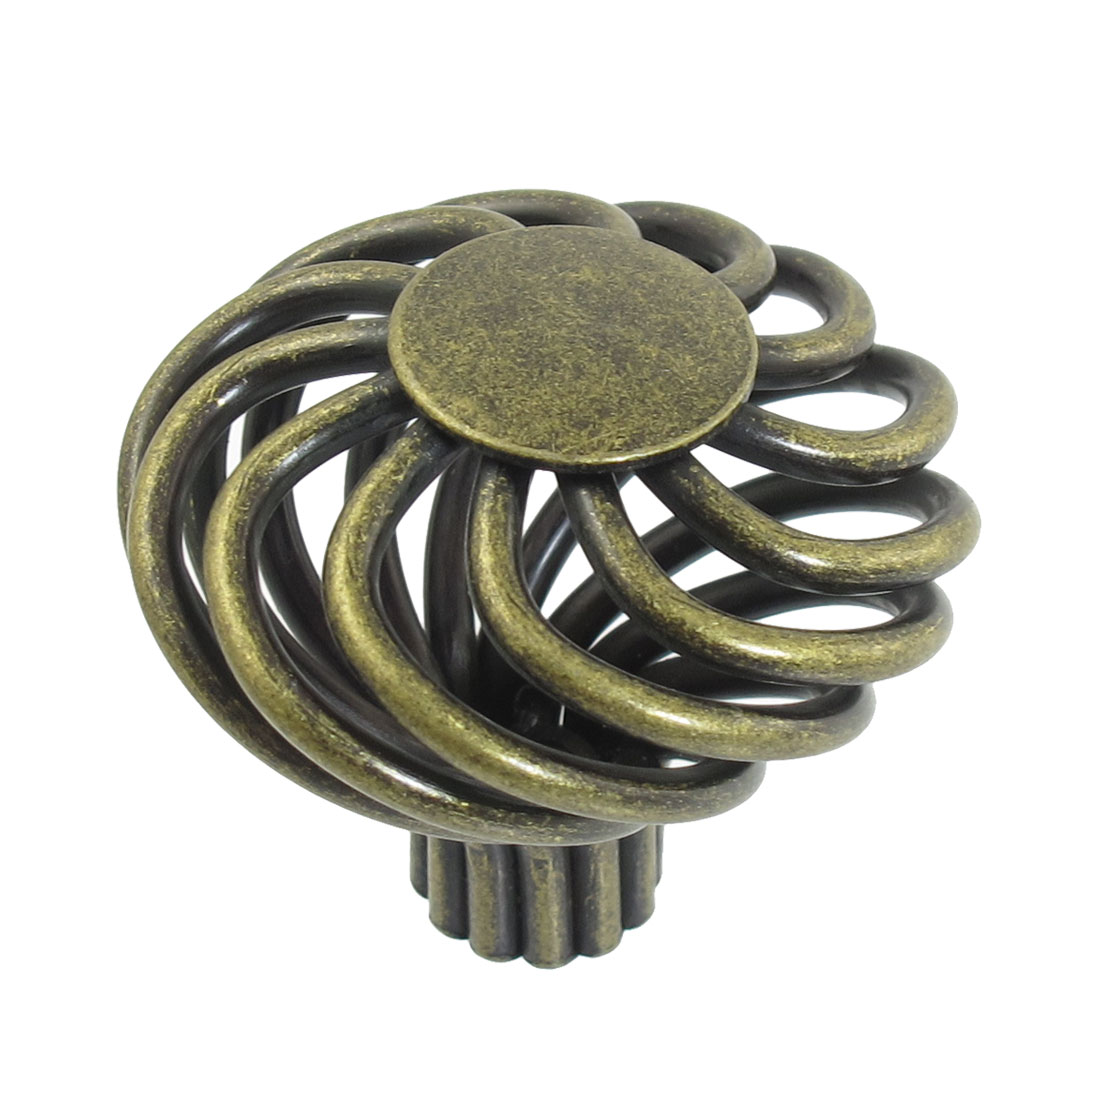 45mm Hollowed Flower Vintage Bronze Tone Drawer Dresser Pull Knob Handle